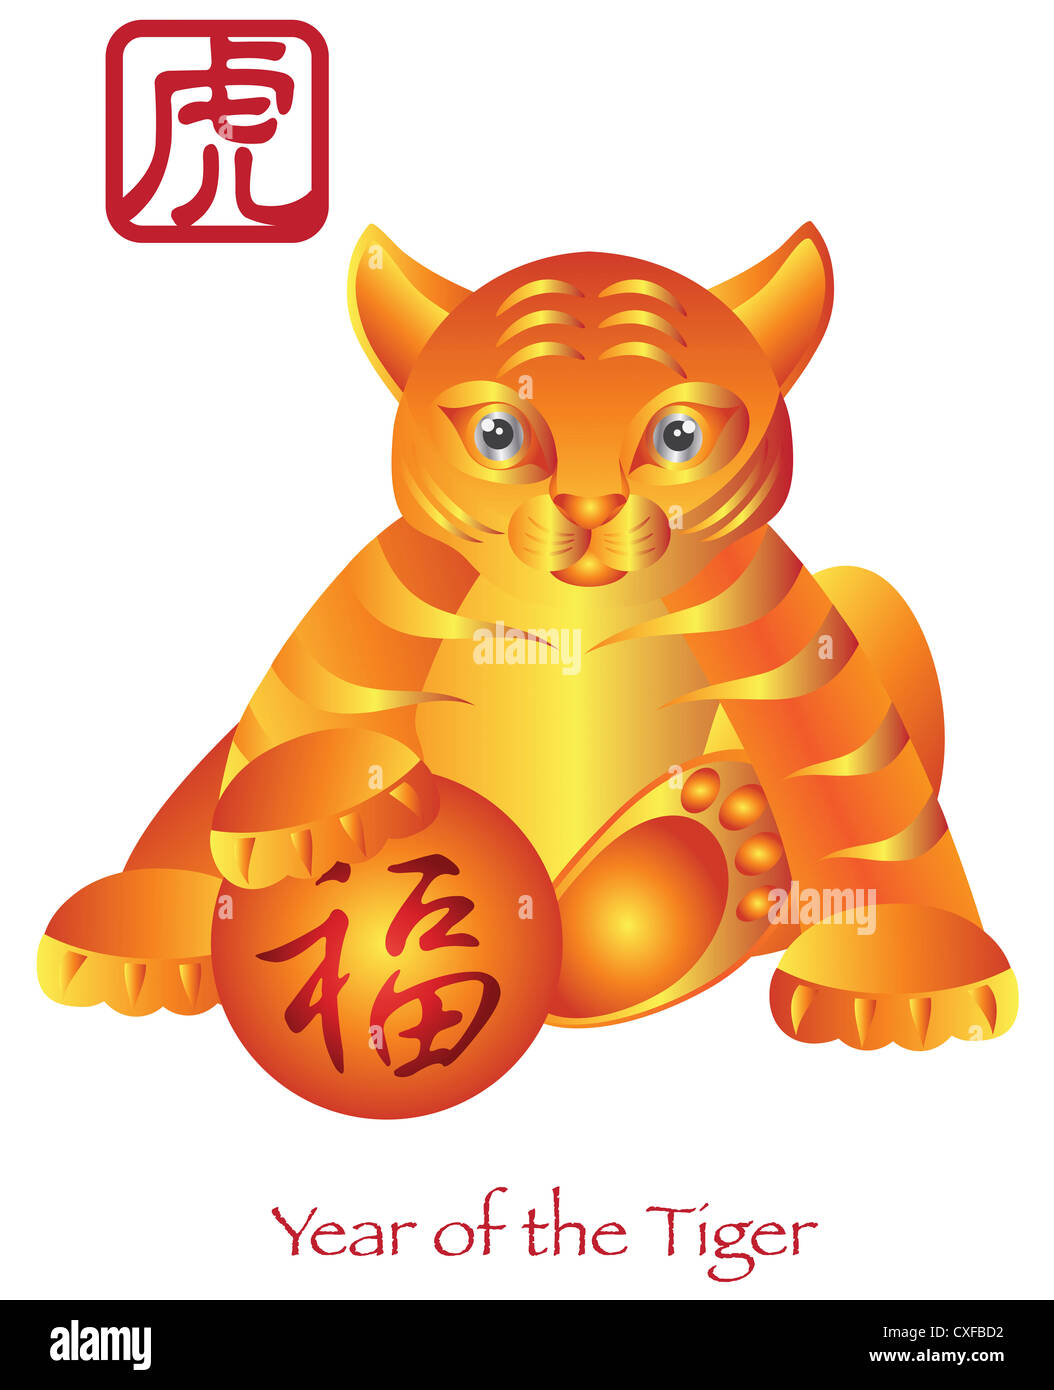 Chinese New Year of the Tiger Zodiac with Chinese Tiger and Prosperity Text Illustration - Stock Image